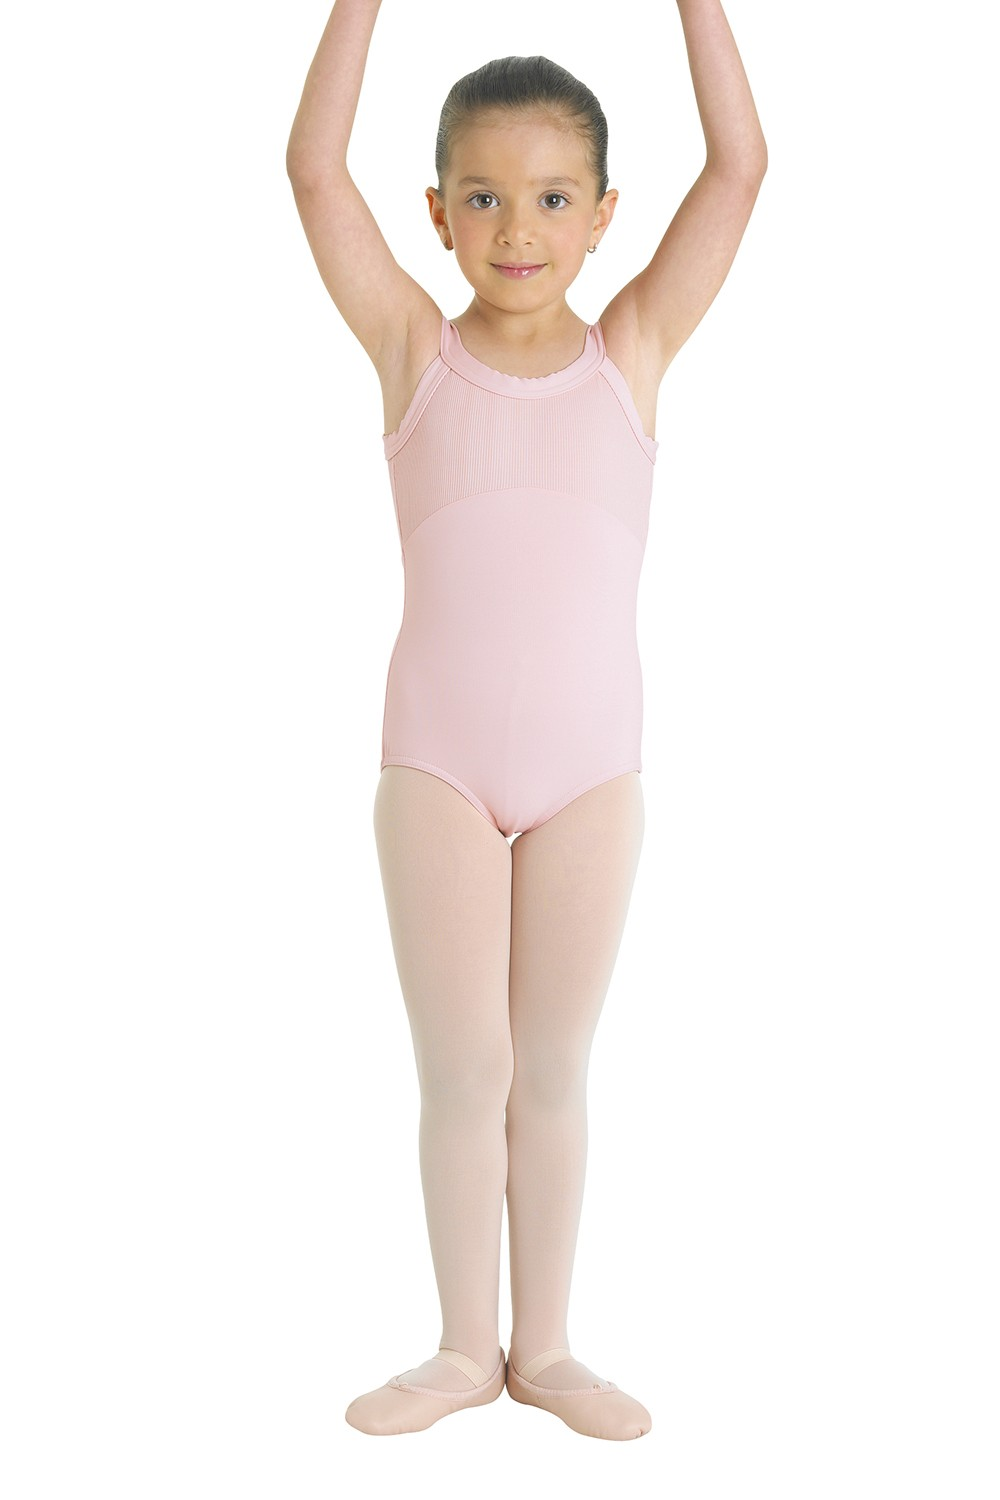 Ribbed Bodice Round Neck Leotard Children's Dance Leotards